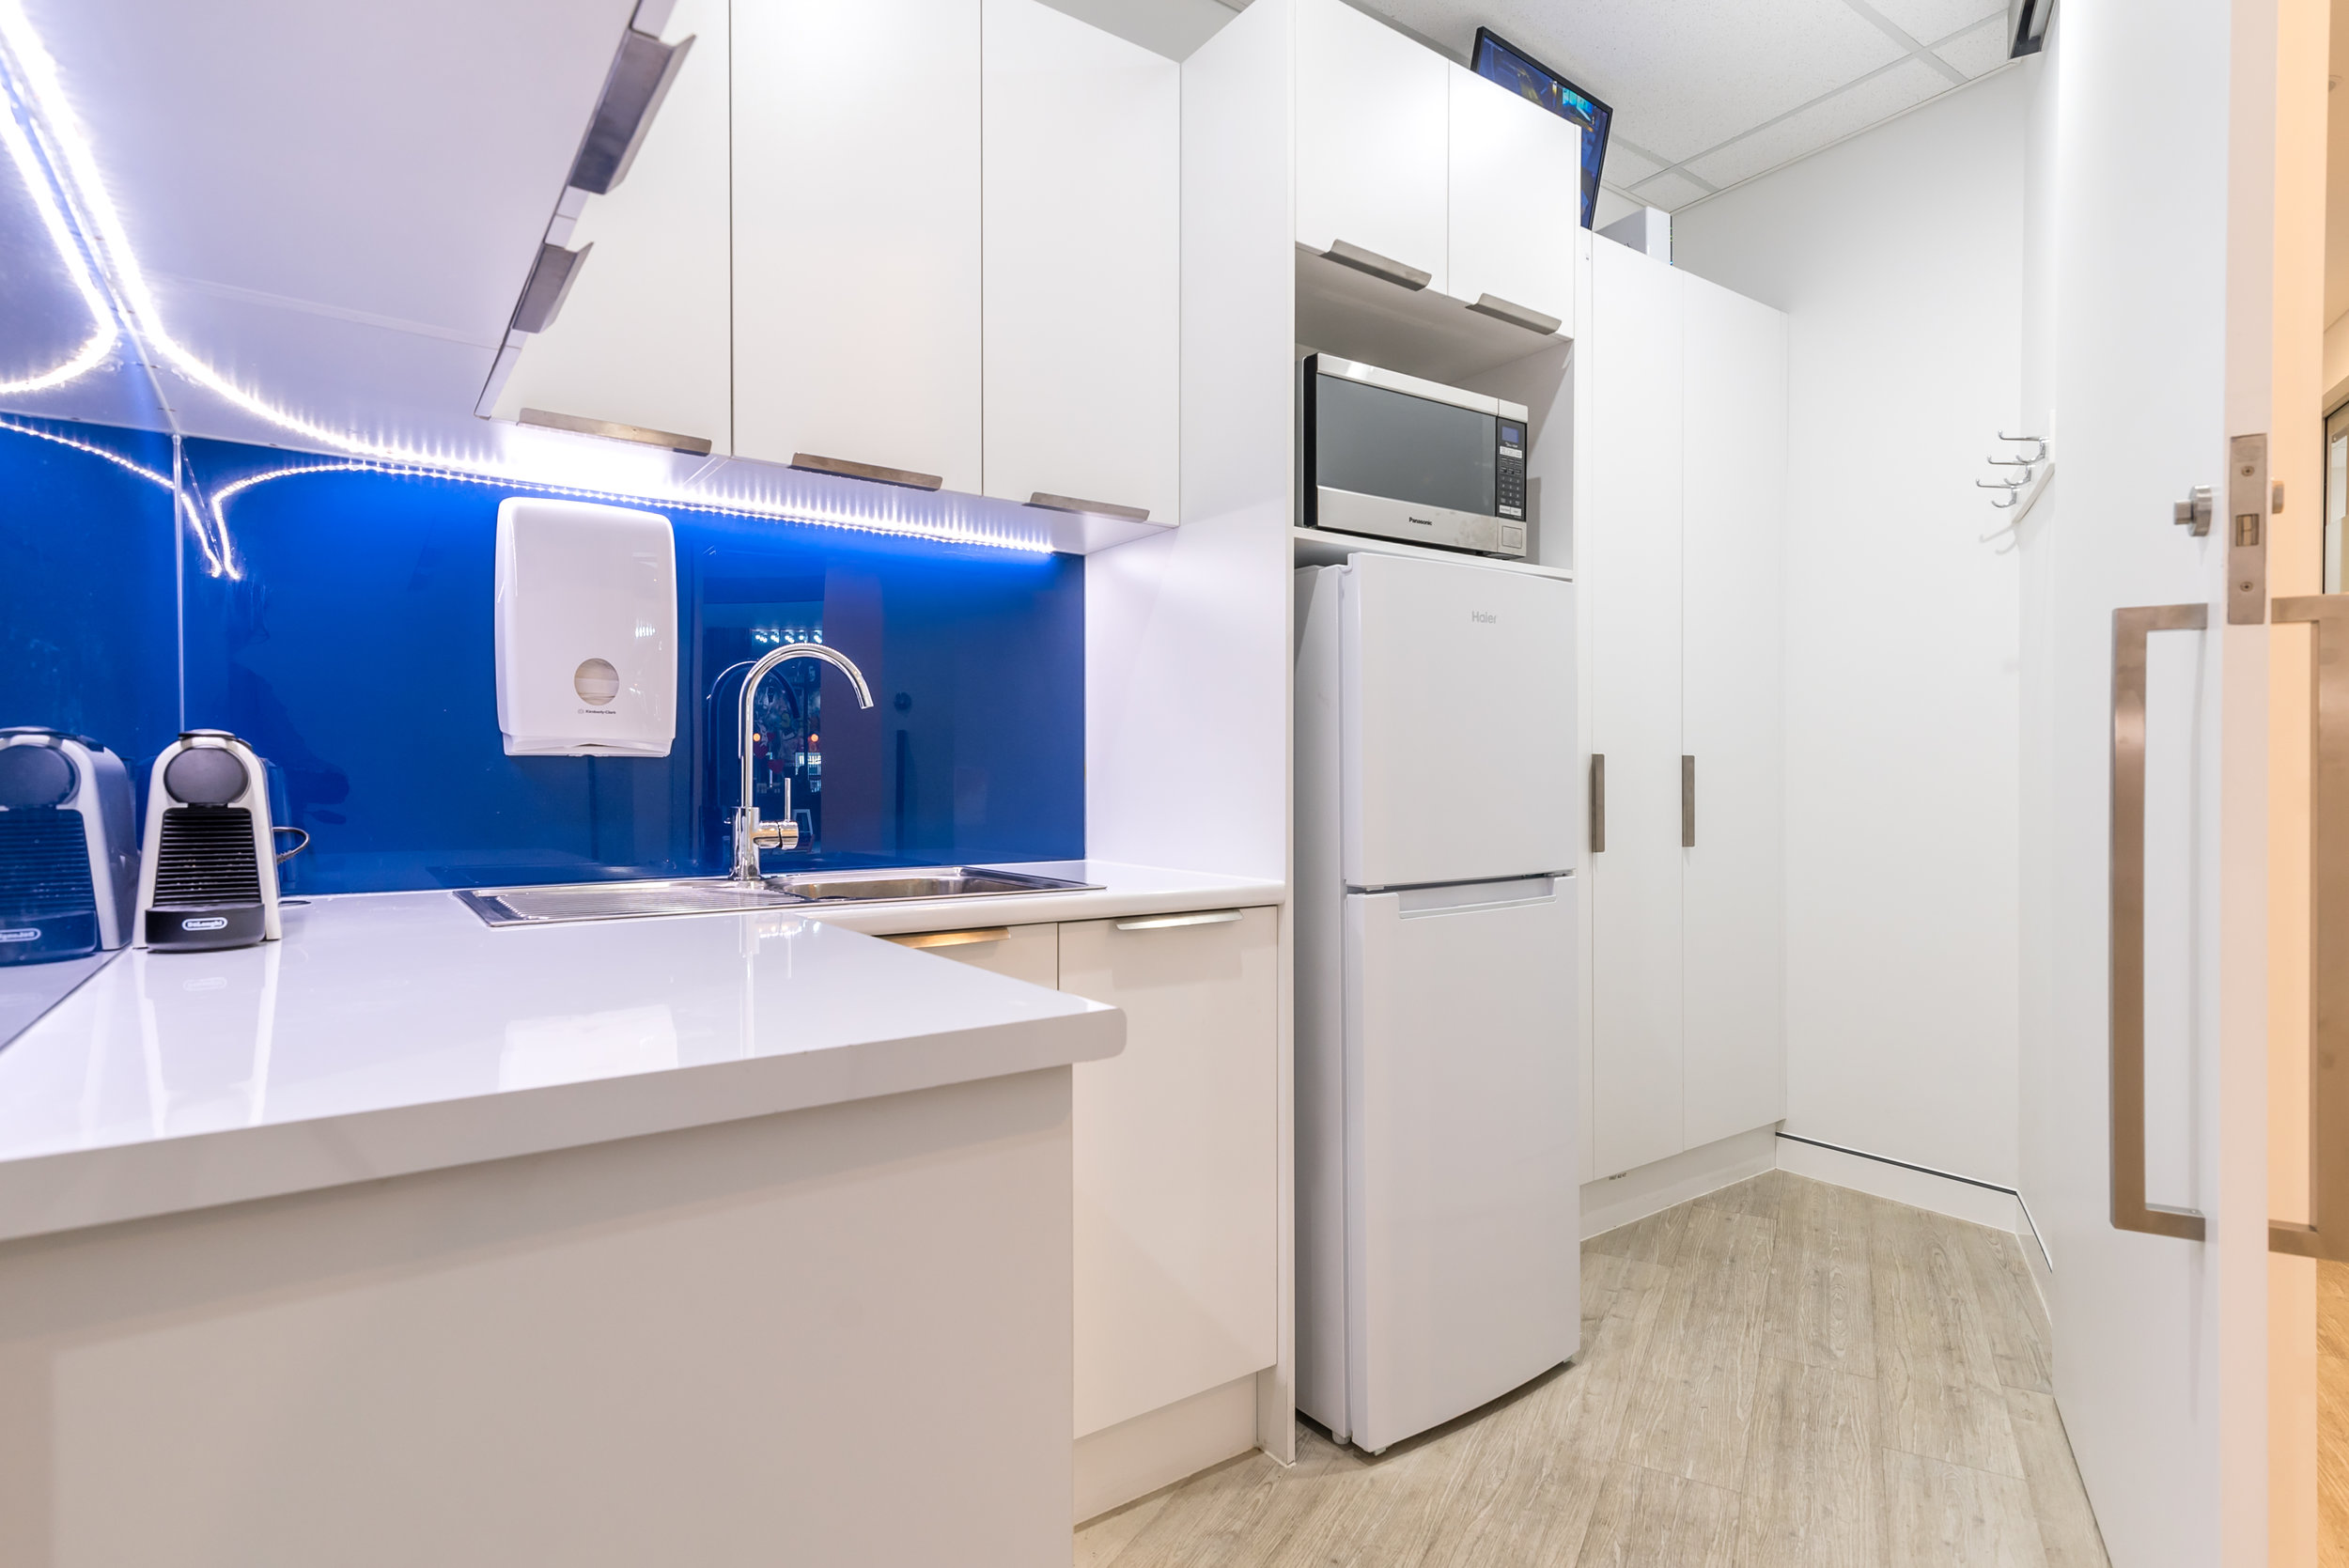 Commodore Dental and Medical Fitout - Sydney-65.jpg